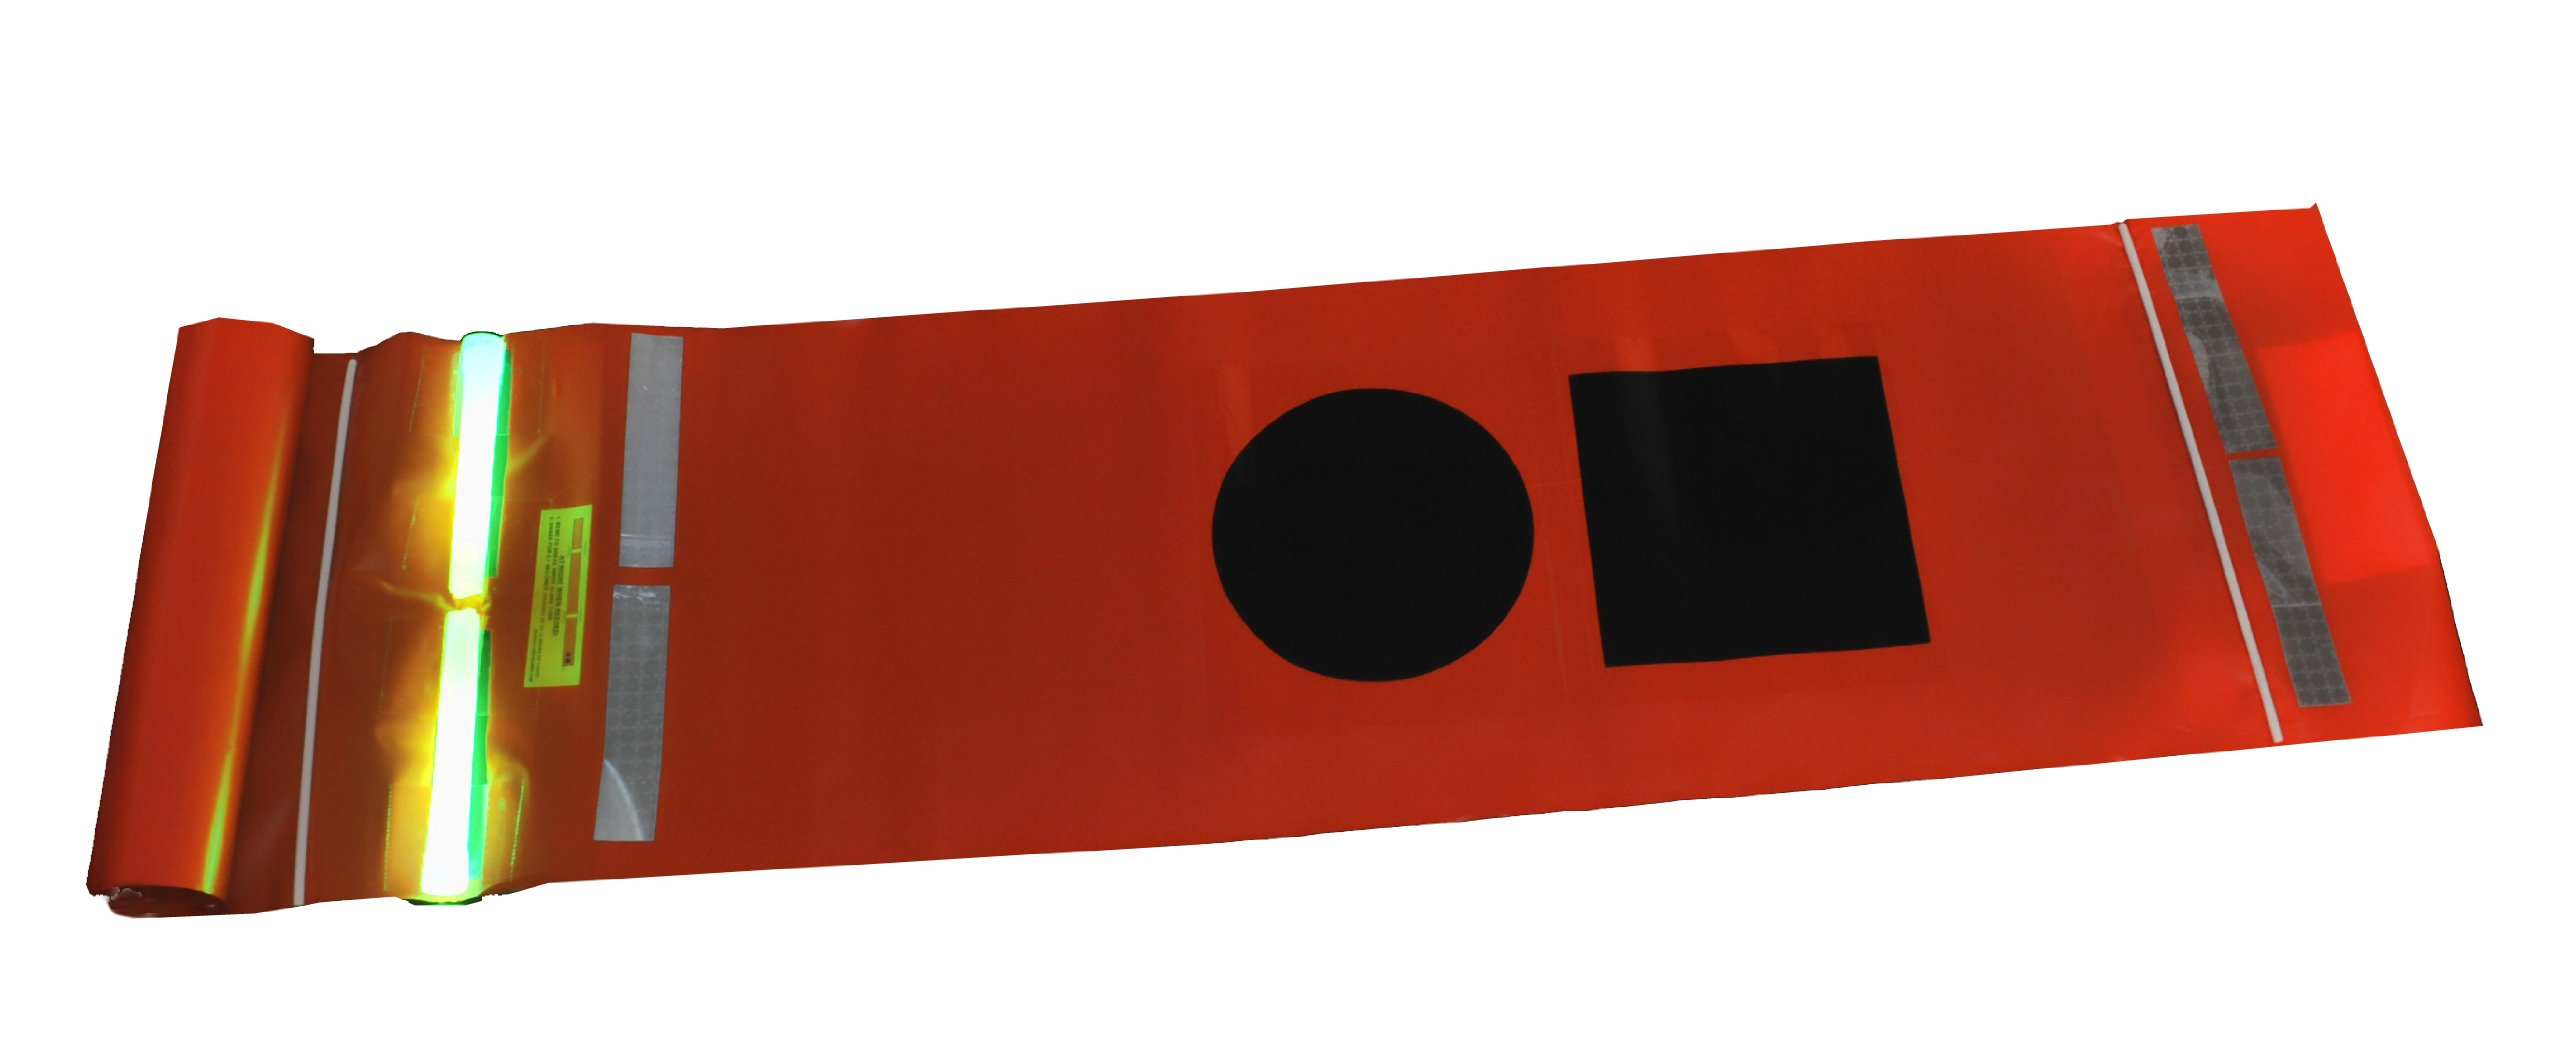 See/Rescue Streamer, Lighted Safety and Rescue Device for Any Terrain - Large by See/Rescue (Image #2)